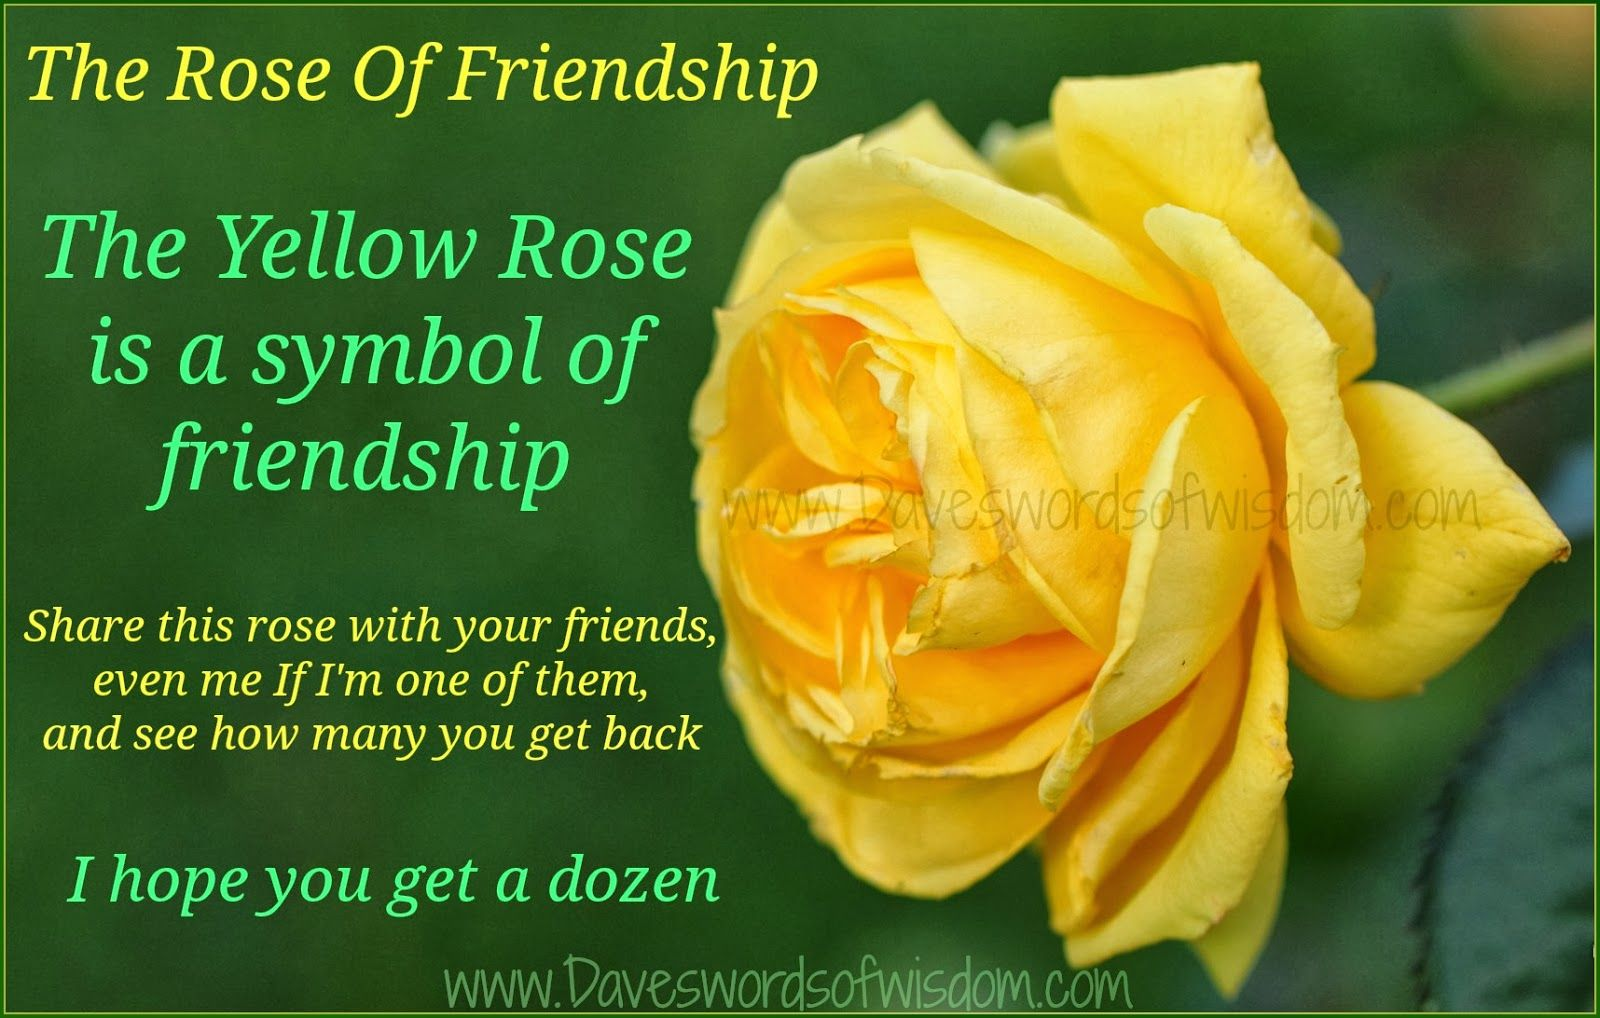 The Yellow Rose is a symbol of friendship. Share this rose